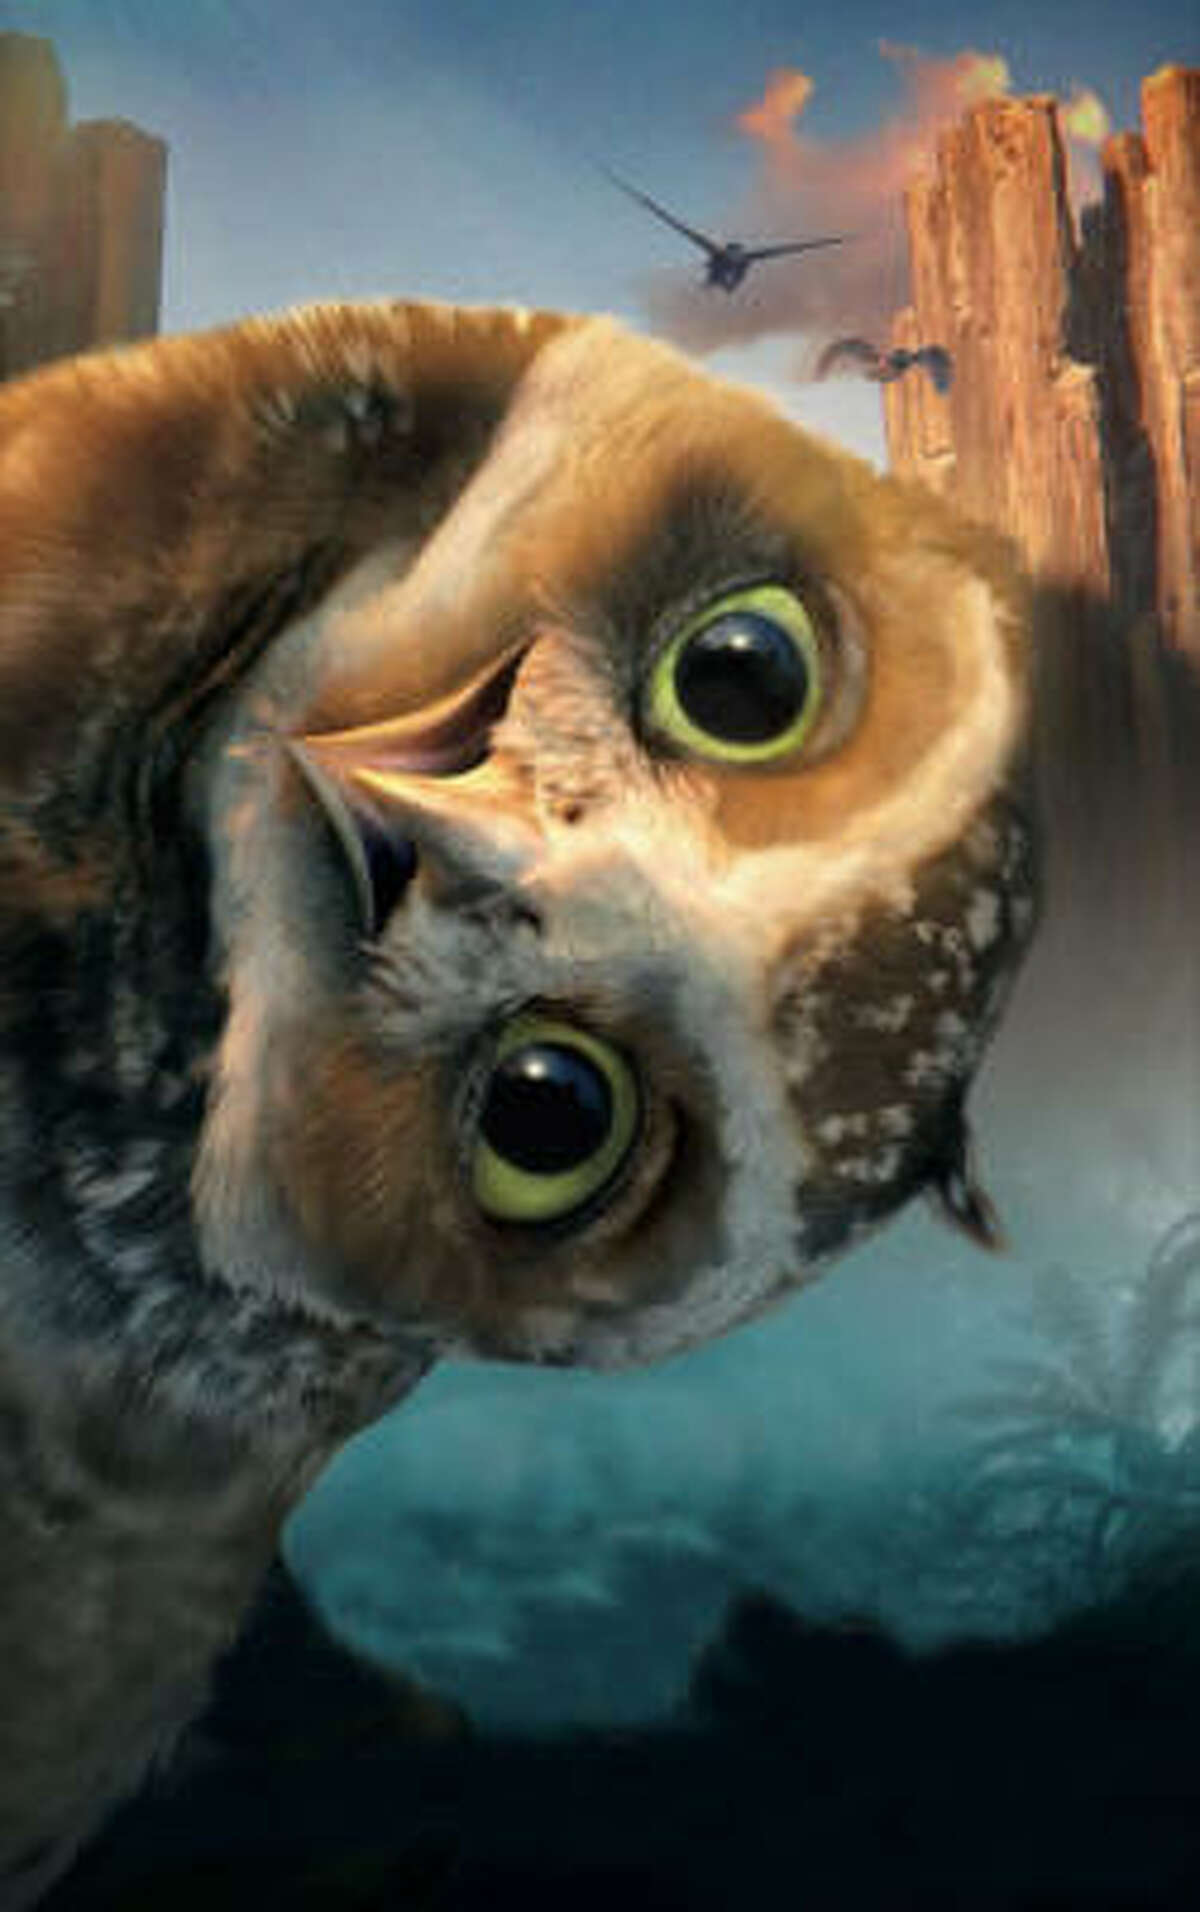 Legend of the Guardians: The Owls of Ga'Hoole , $3.2 million: A family of owls battle evil owls in this animated feature.